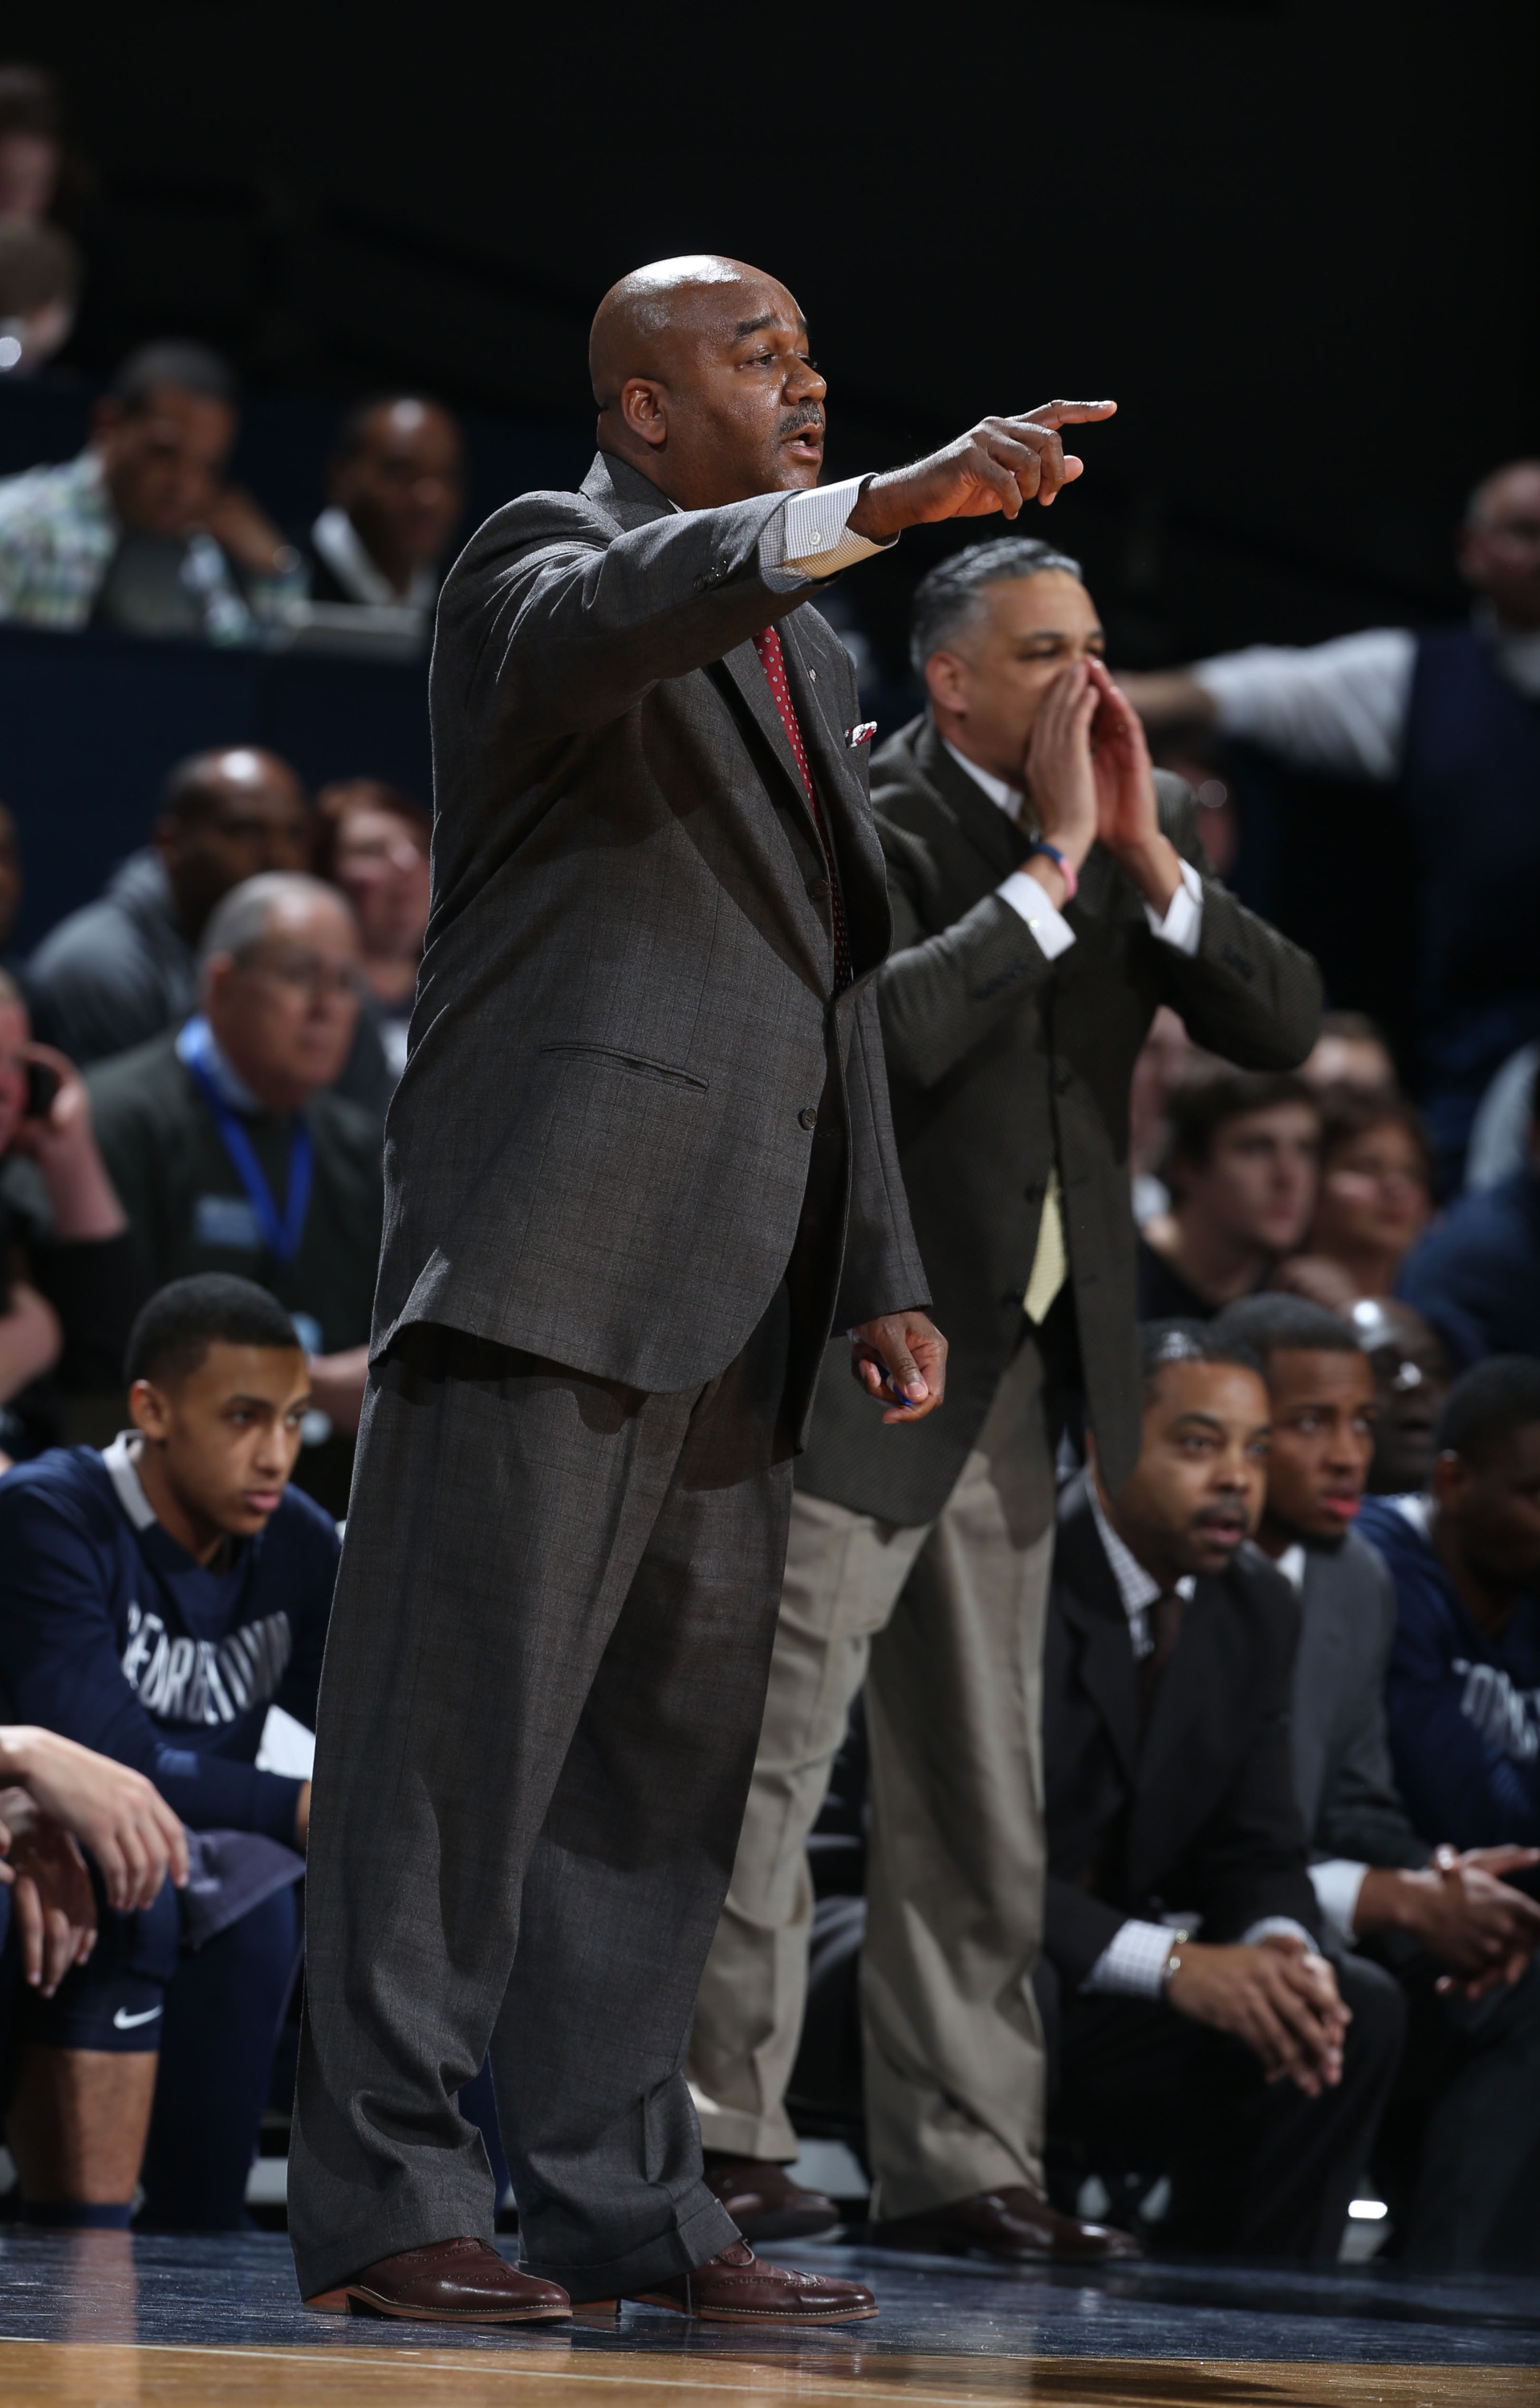 As part of its ongoing corporate partnership with the National Association of Basketball Coaches (NABC), the NCAA and ESPN, Infiniti announced an expanded